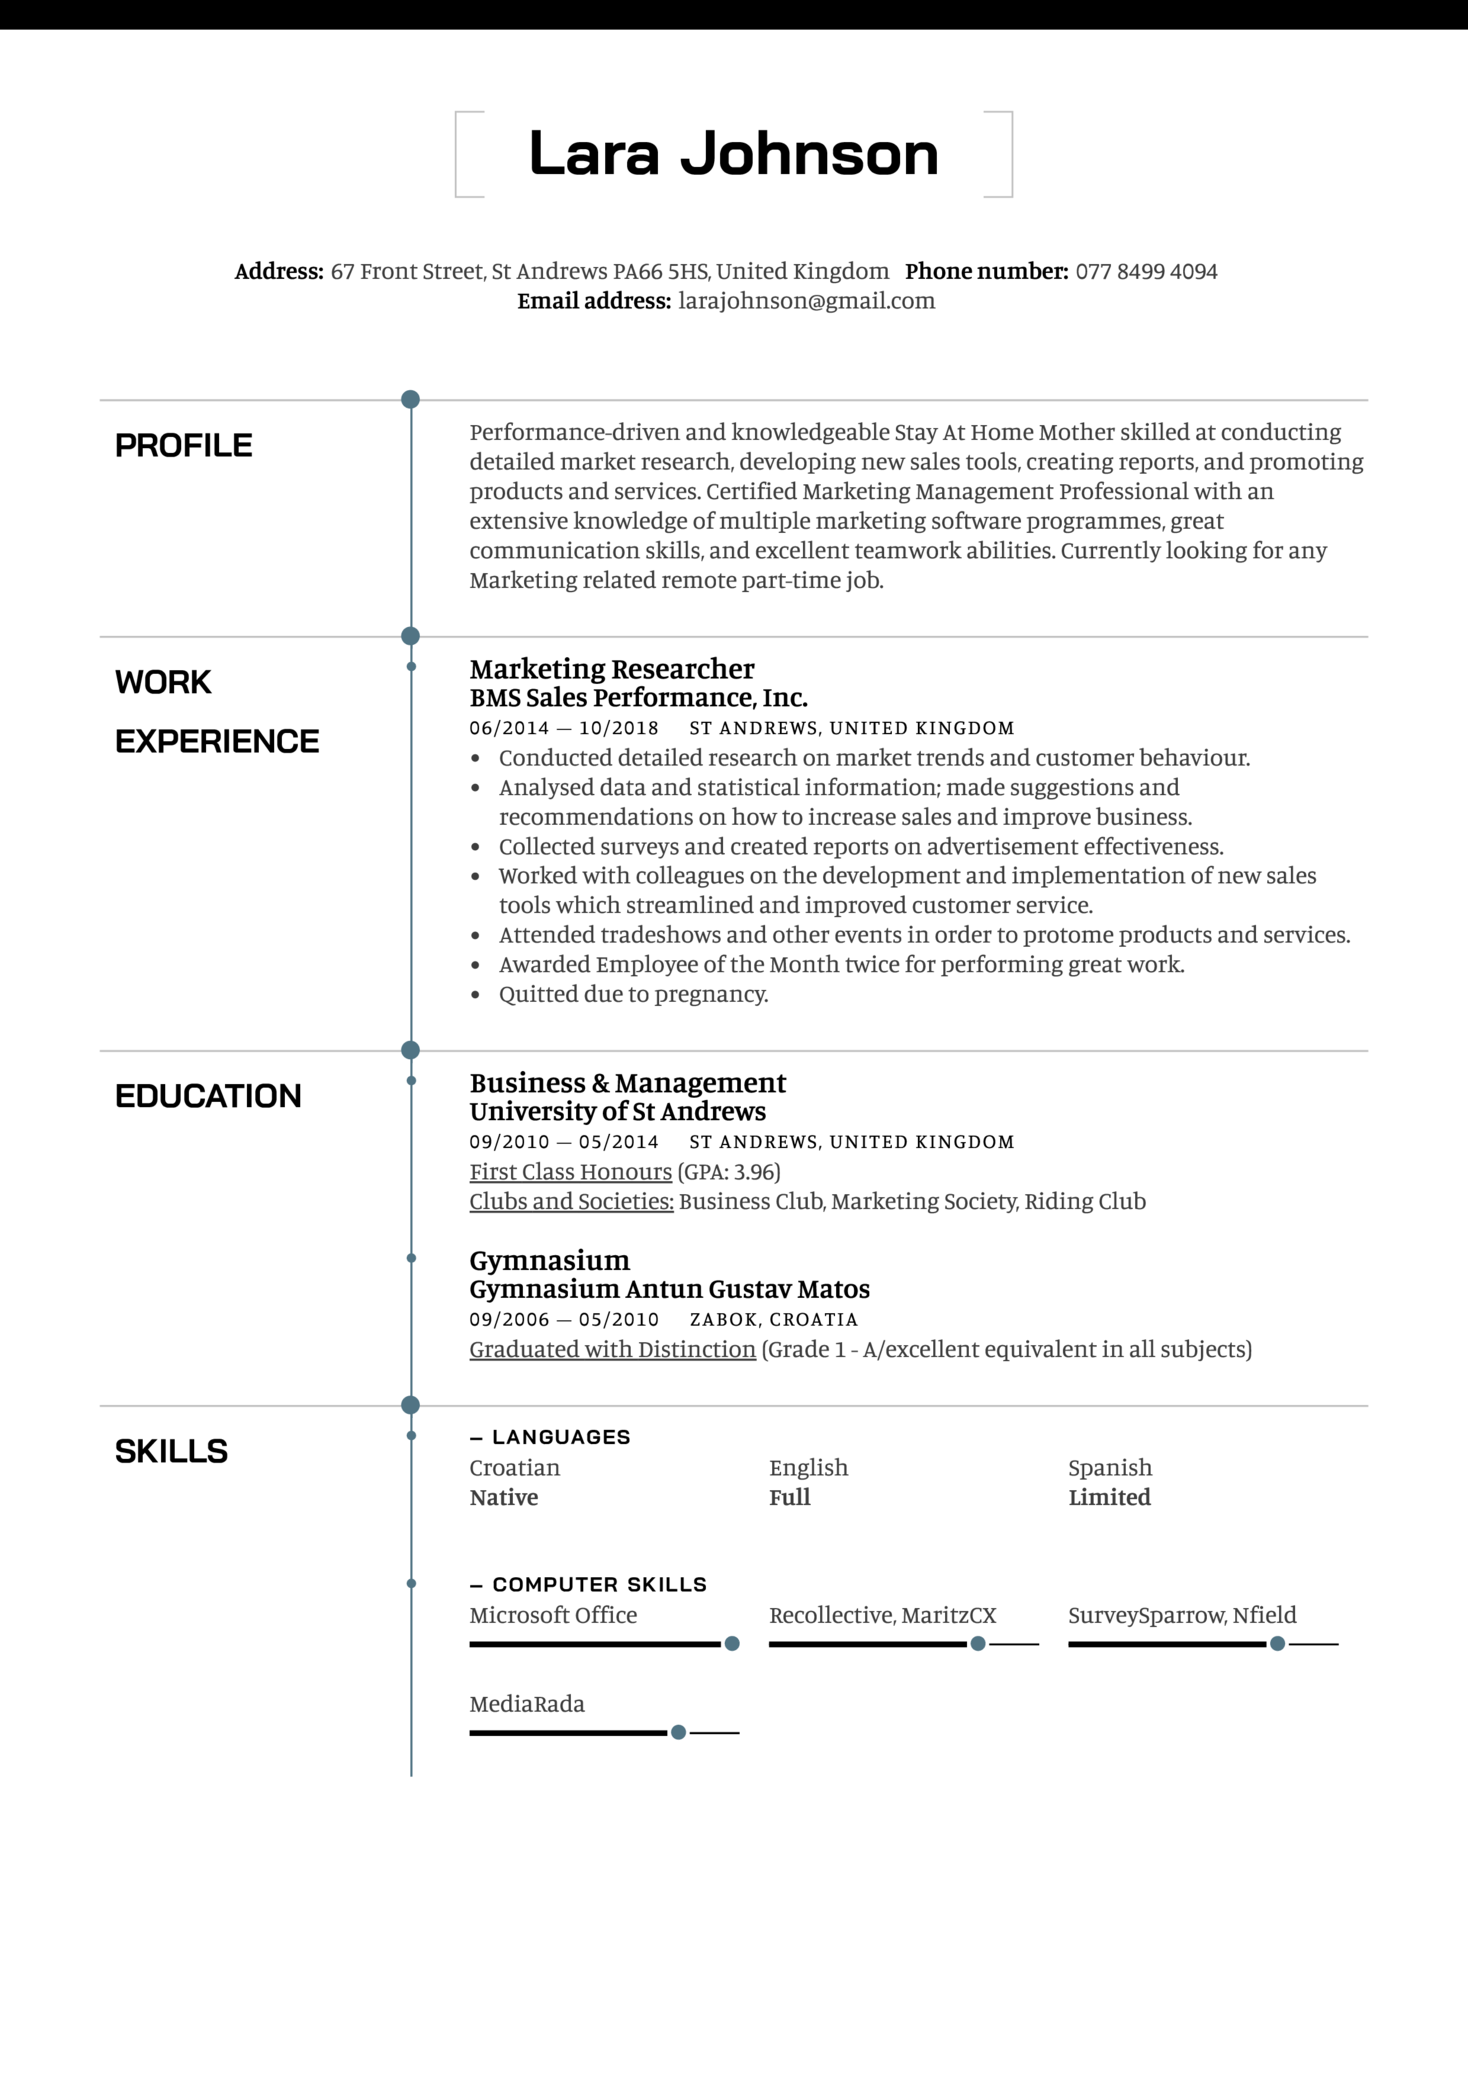 Stay At Home Mother Resume Example (Part 1)